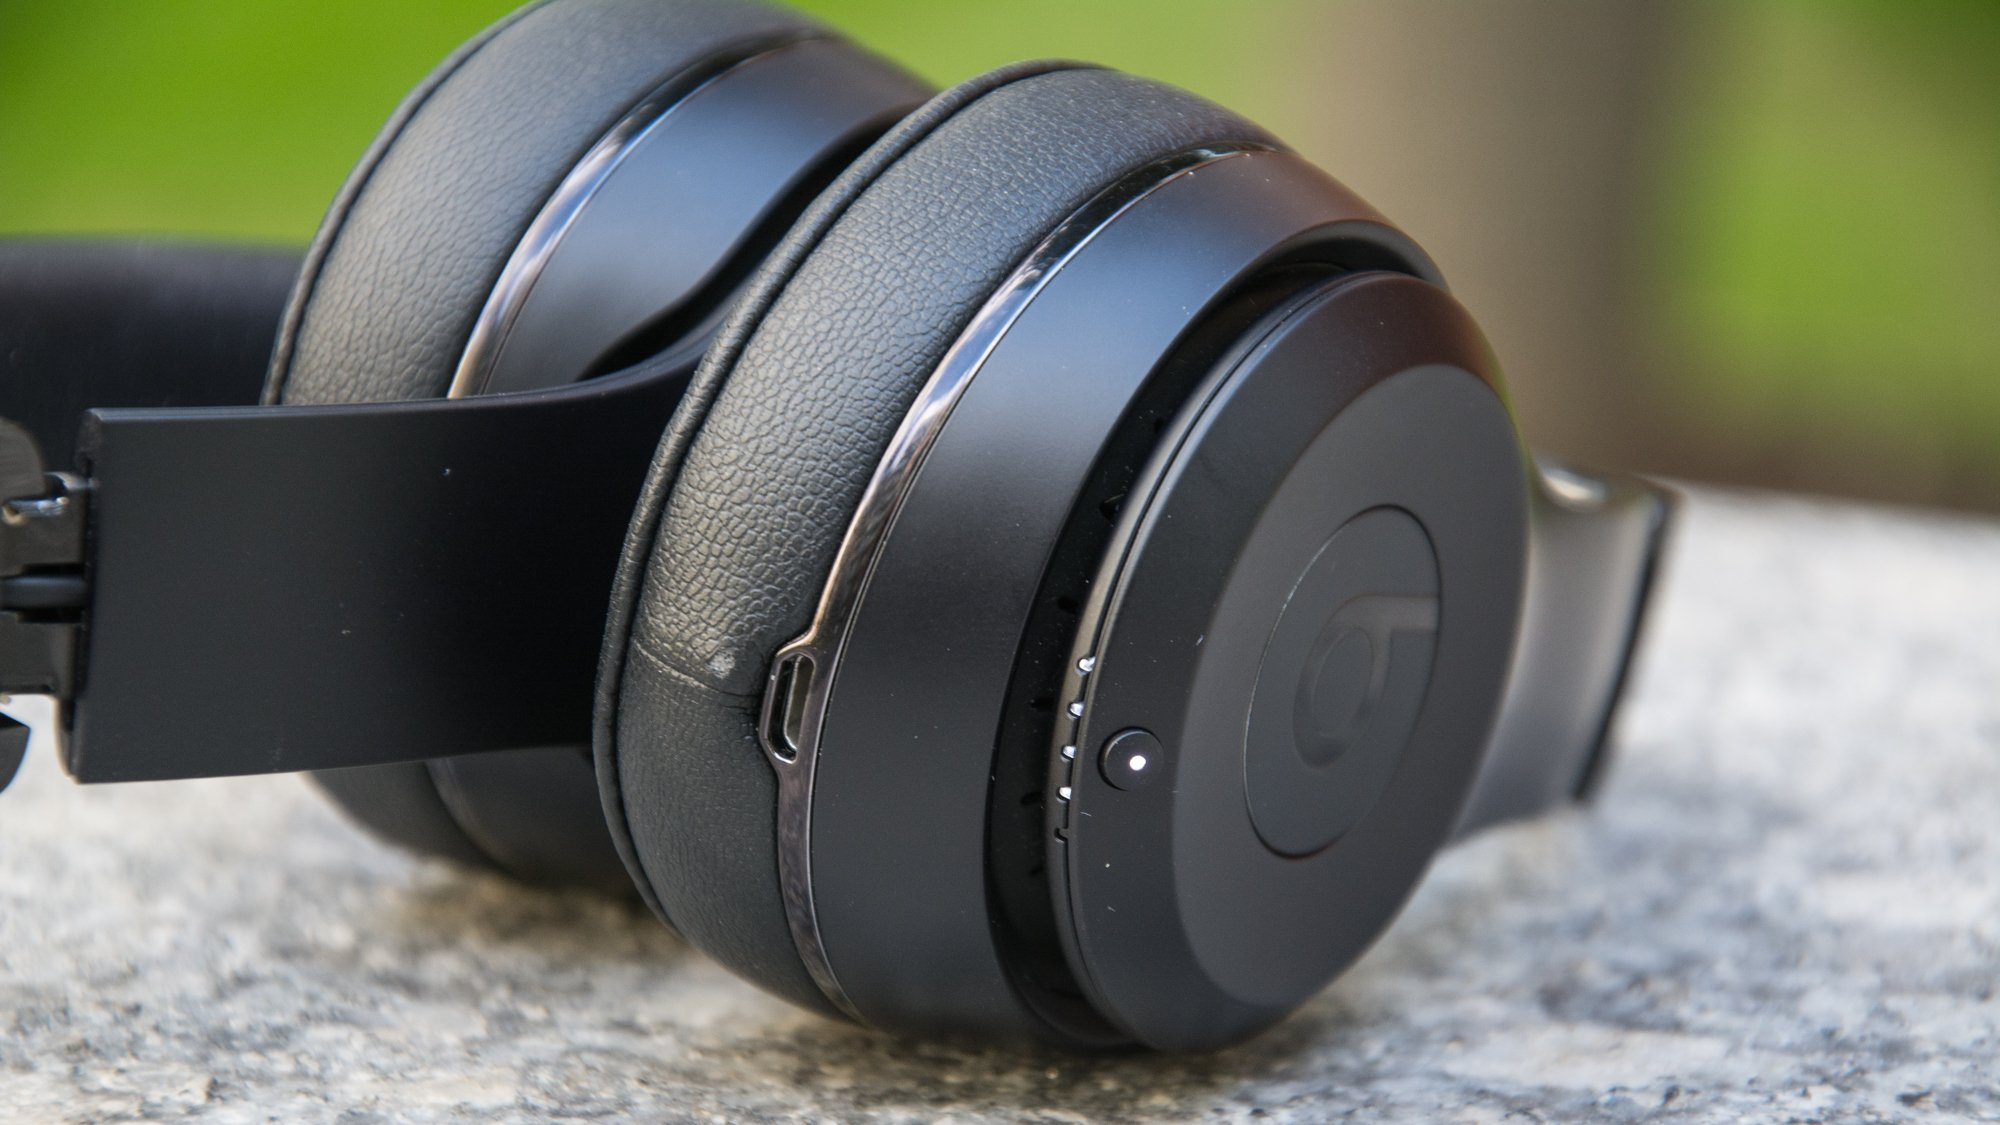 Beats Solo 3 review: The best wireless headphones for your